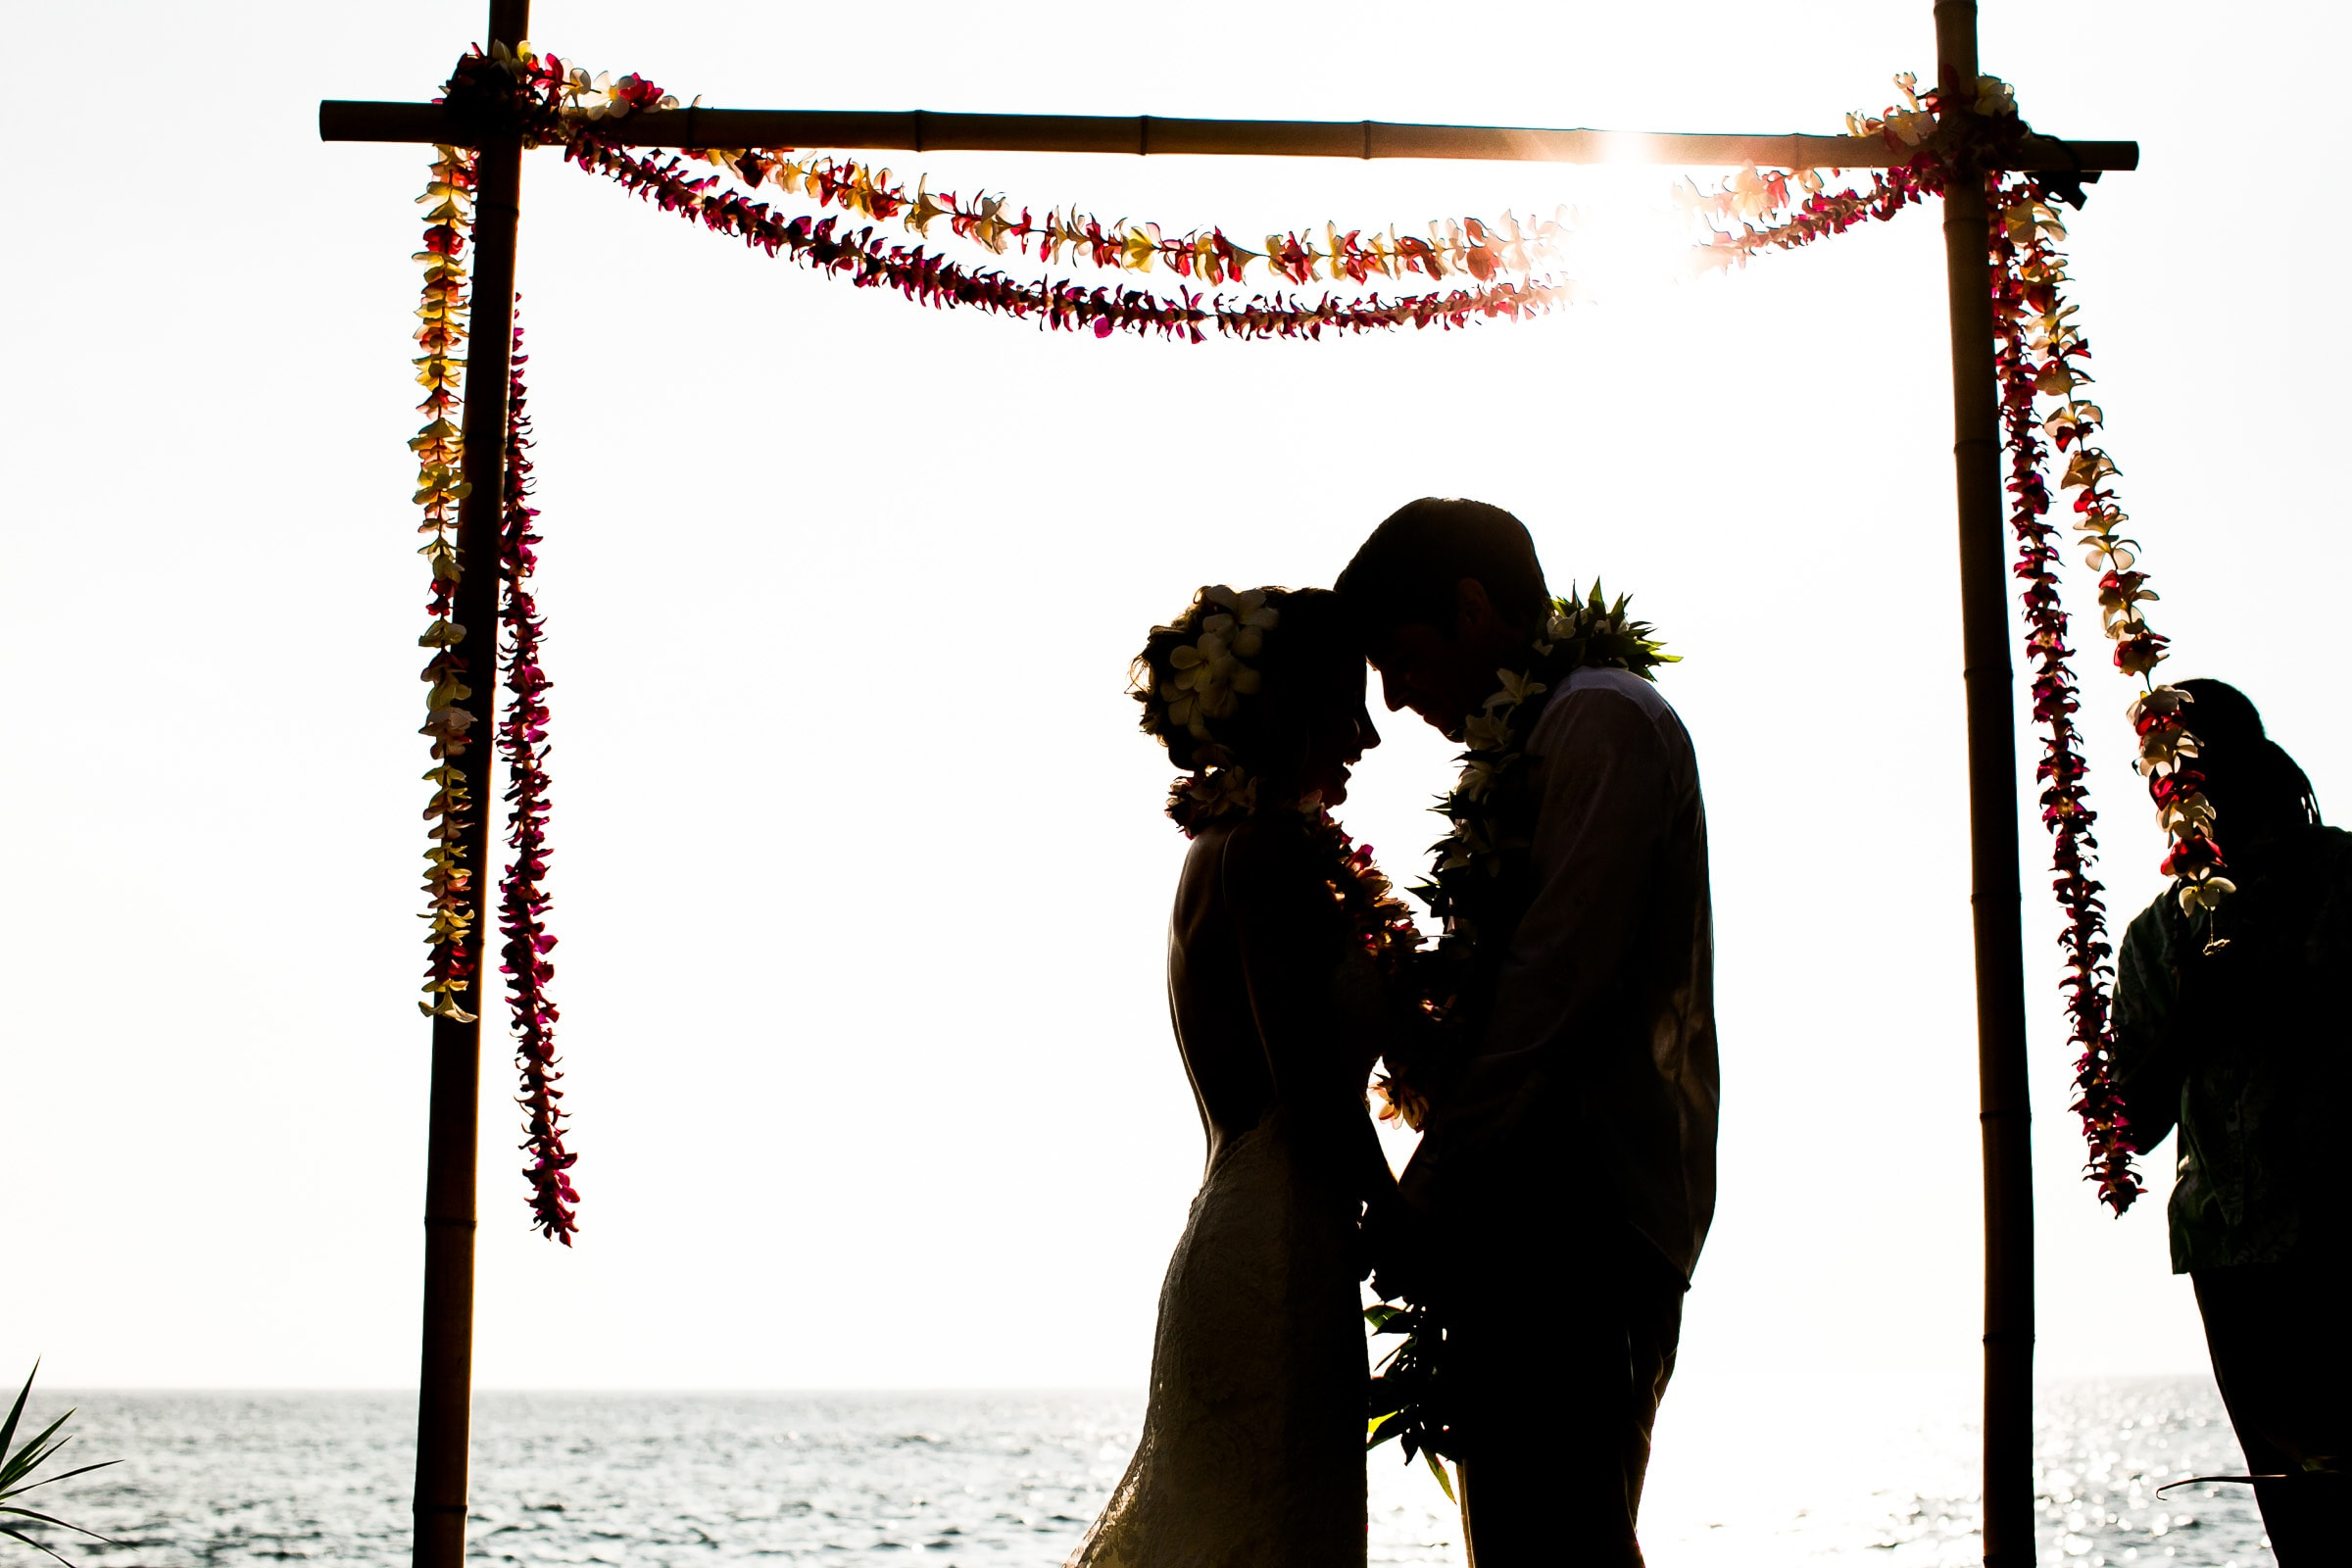 Bride and groom embracing in a silhouette during a Kailua Kona Wedding ceremony at the Kona Beach Bungalows on the Big Island of Hawaii